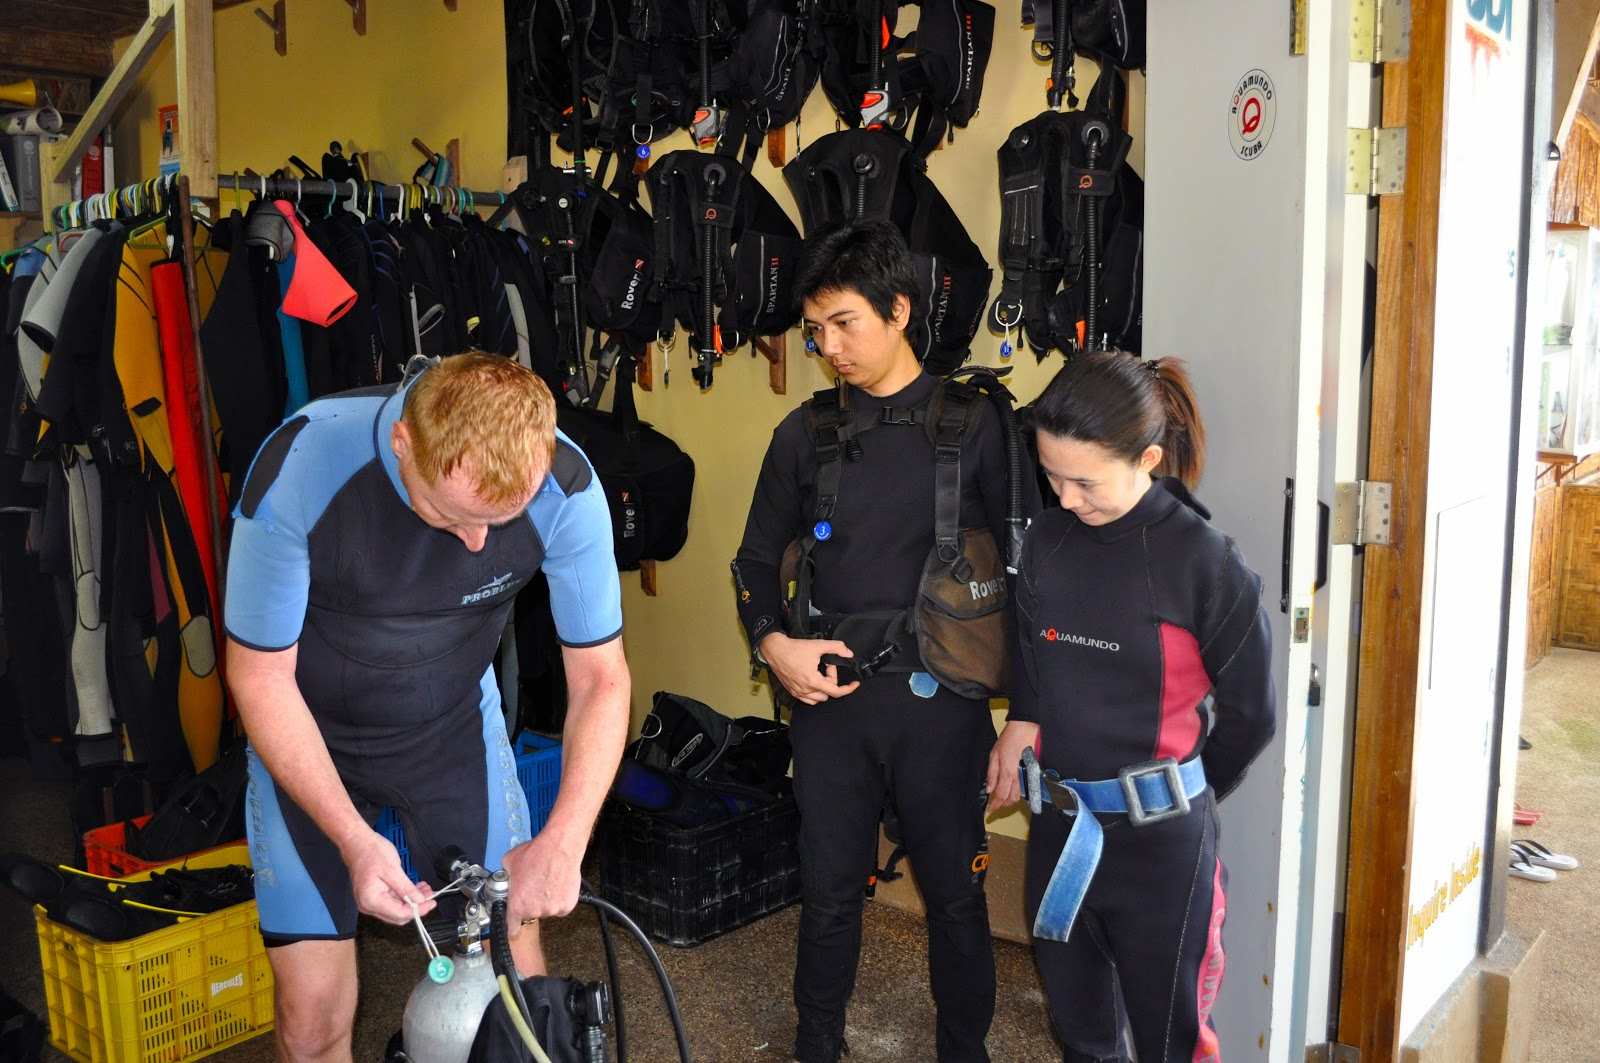 scuba equipment